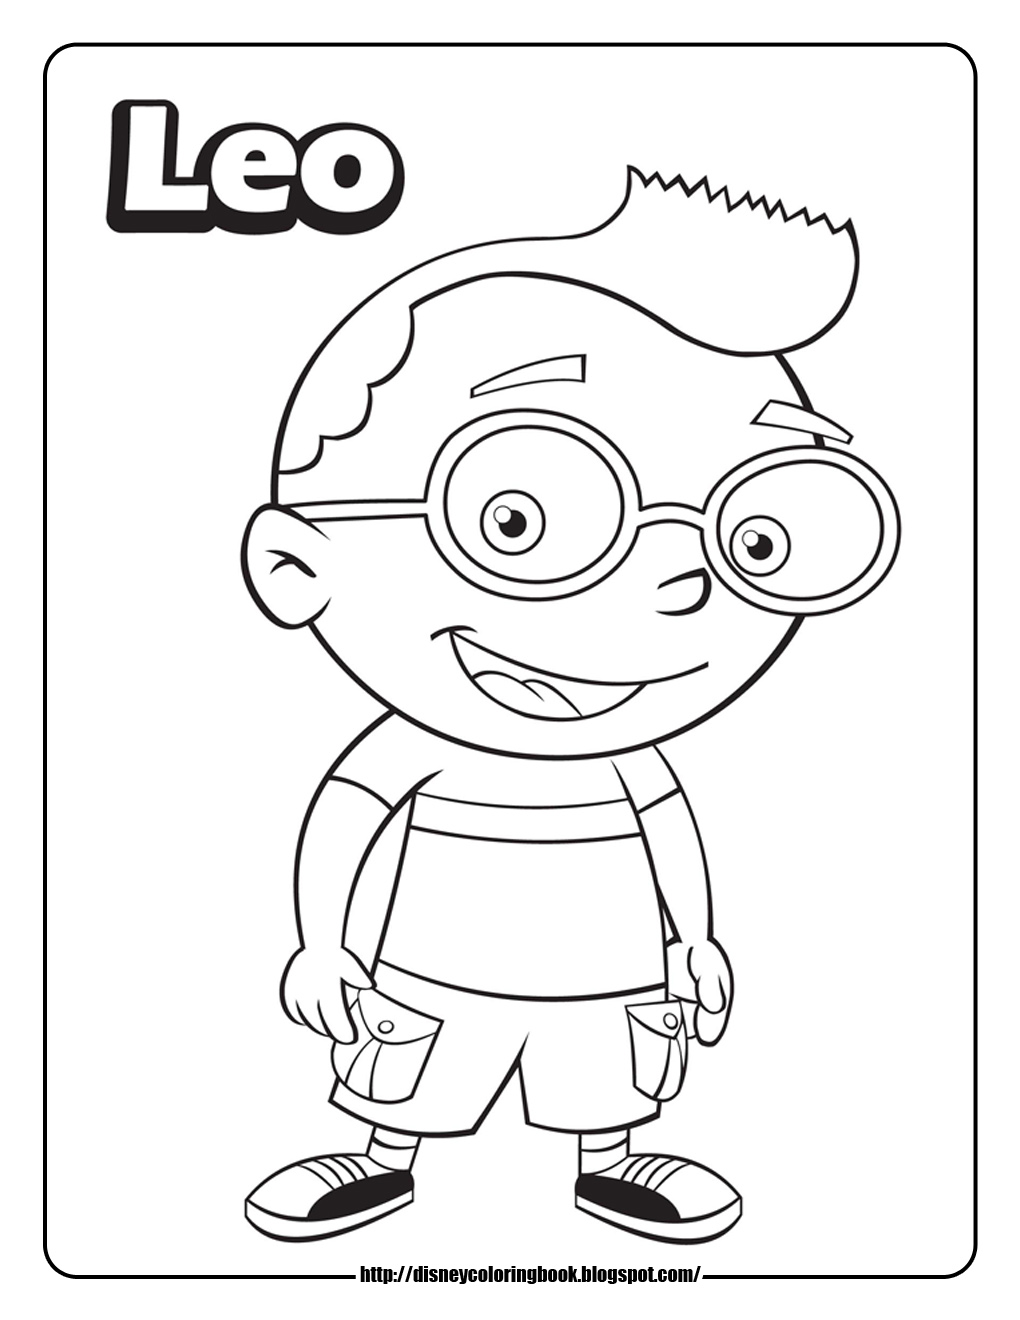 Disney Coloring Pages and Sheets for Kids: Little